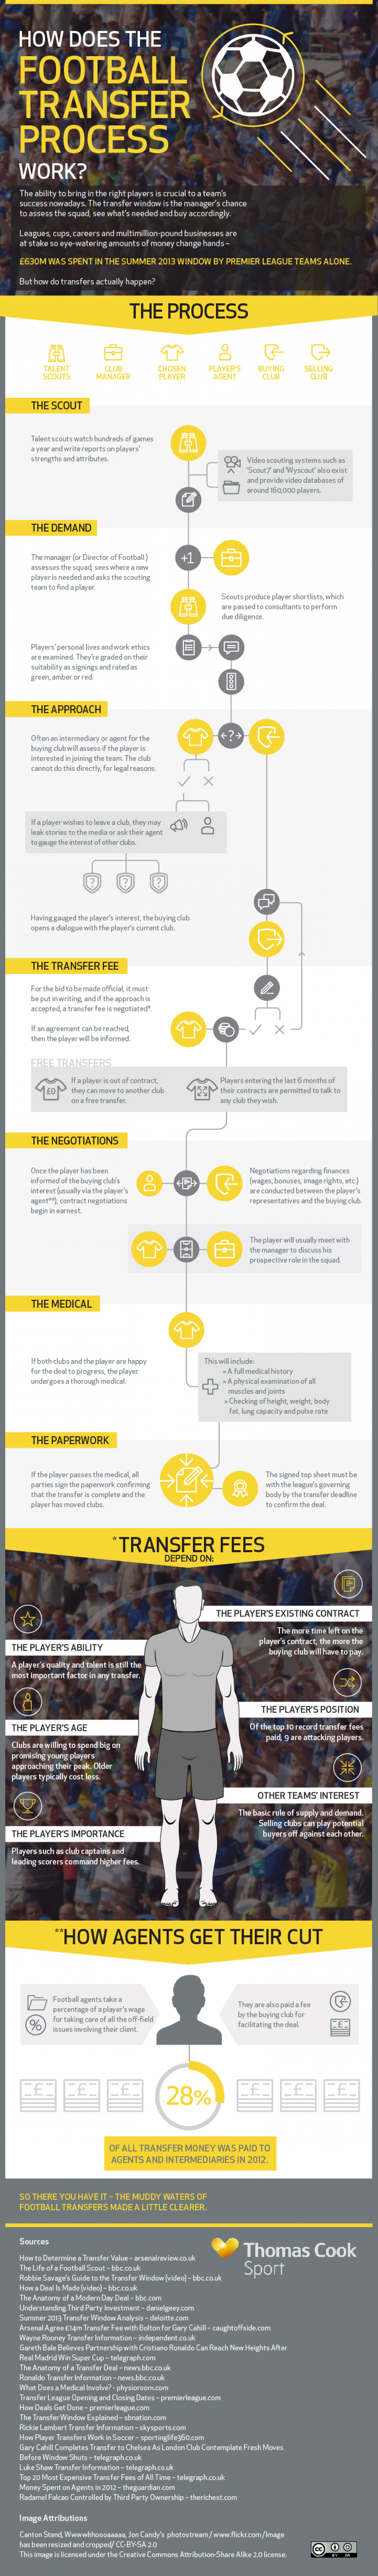 How Does The Football Transfer Process Work? Infographic